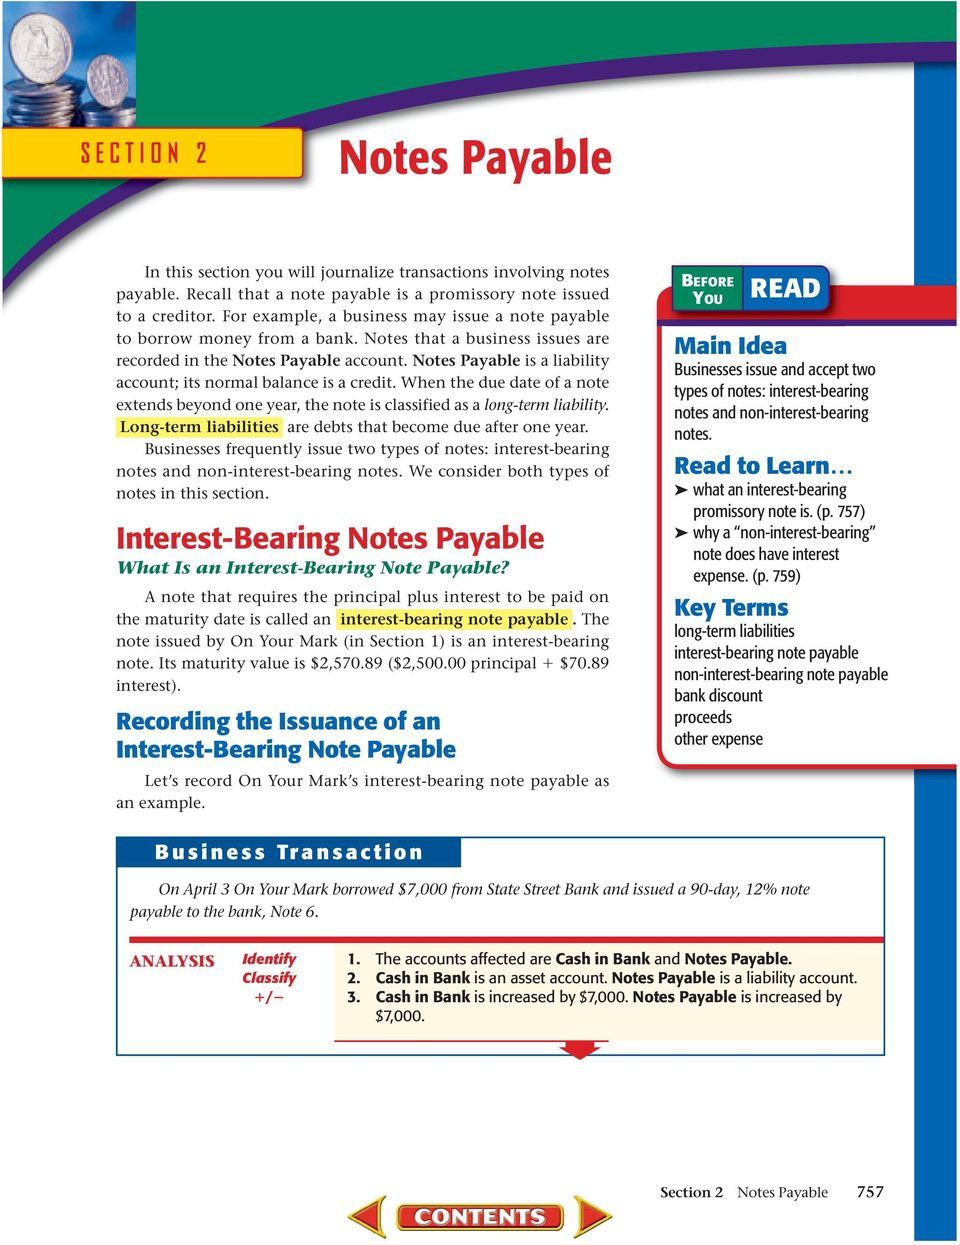 Notes Payable is a liability account; its normal balance is a credit. When the due date of a note extends beyond one year, the note is classified as a long-term liability.